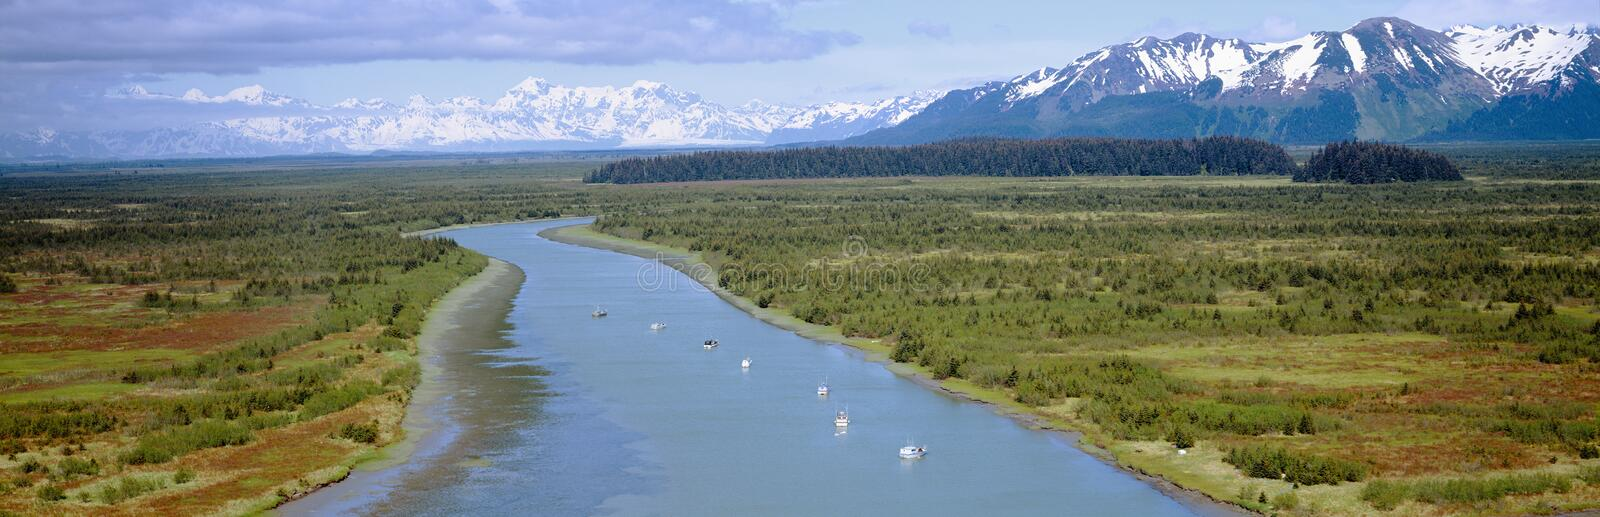 Salmon fishing boats at Wrangell-St. Elias National Park, Alaska stock photography